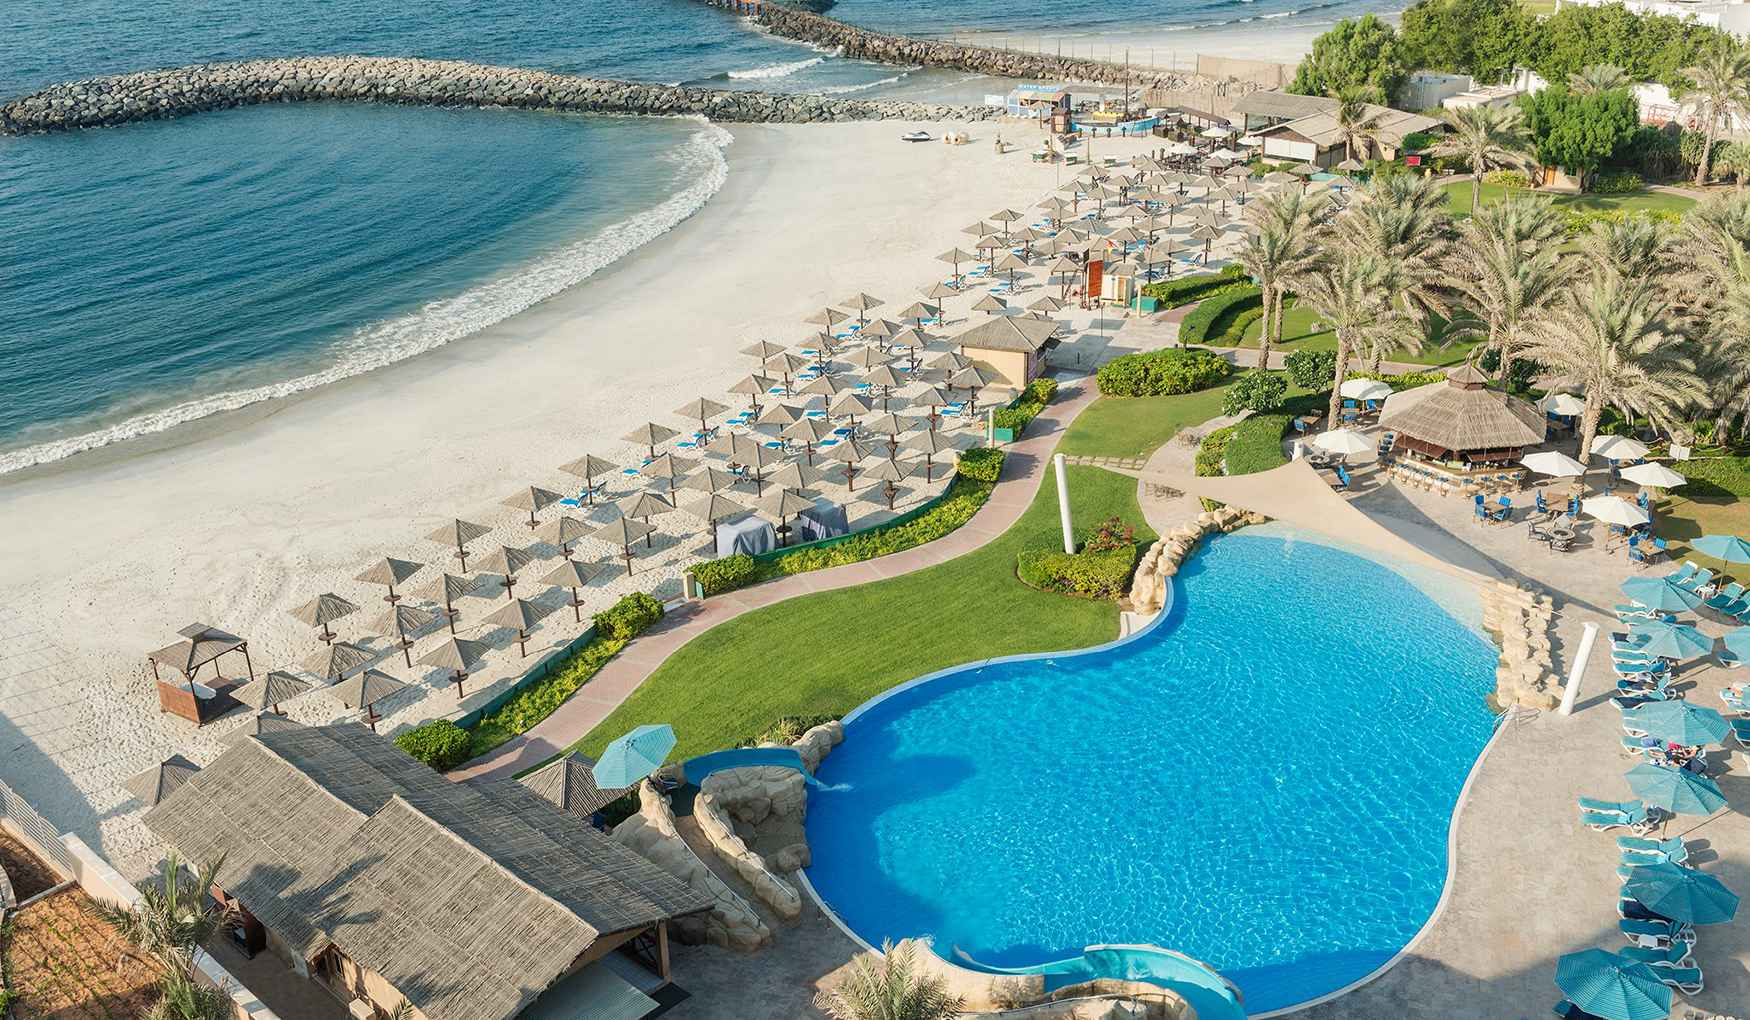 Coral Beach Resort Sharjah